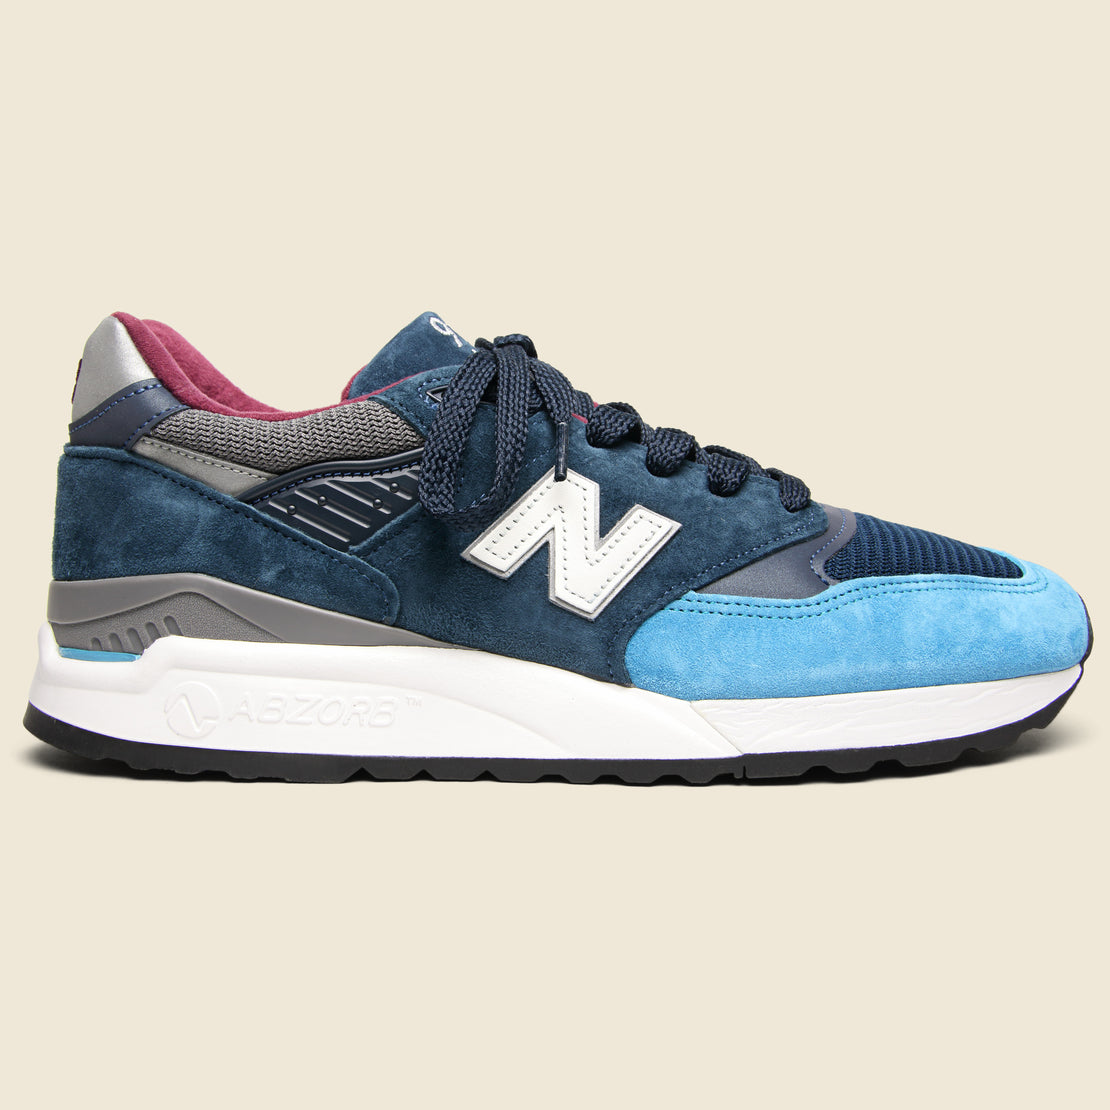 New Balance 998 Sneaker - Blue/Grey